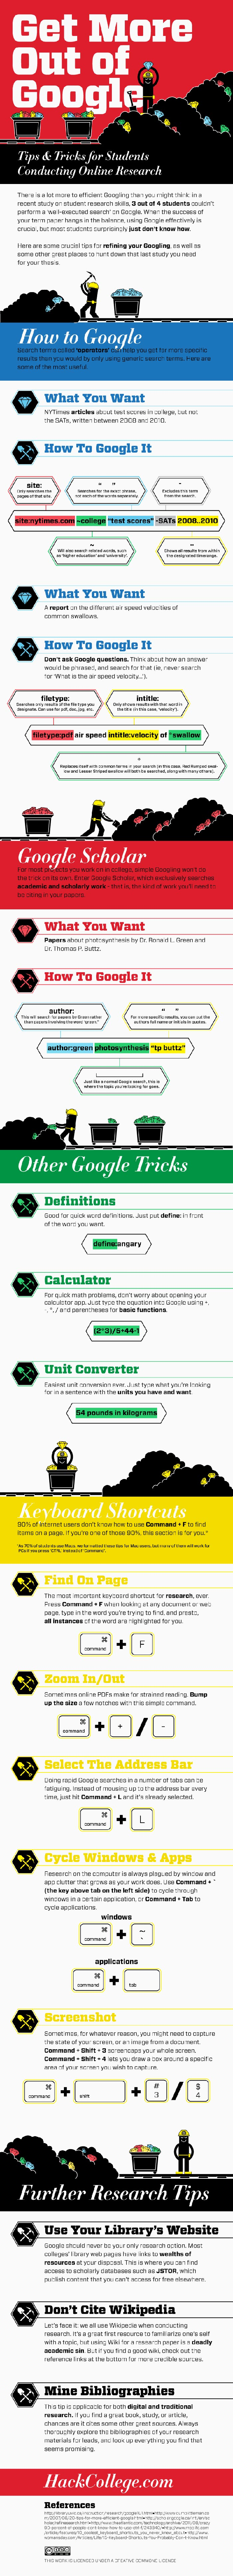 Google Search Tips Infographic